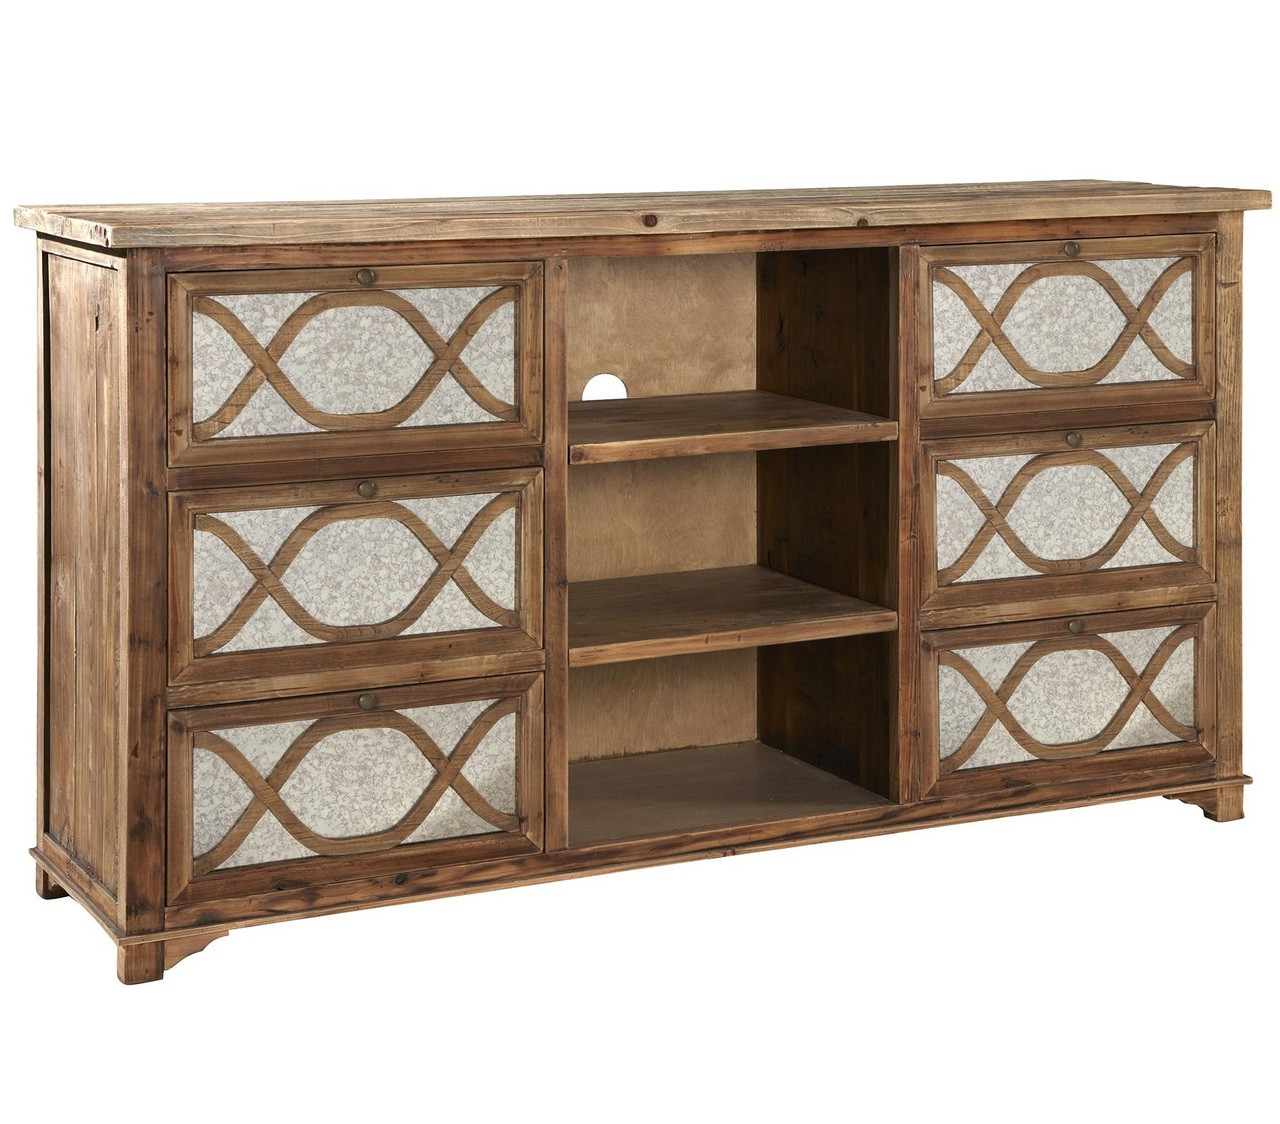 Reclaimed Media Cabinet French Lattice Reclaimed Wood Mirrored Media Cabinet Zin Home